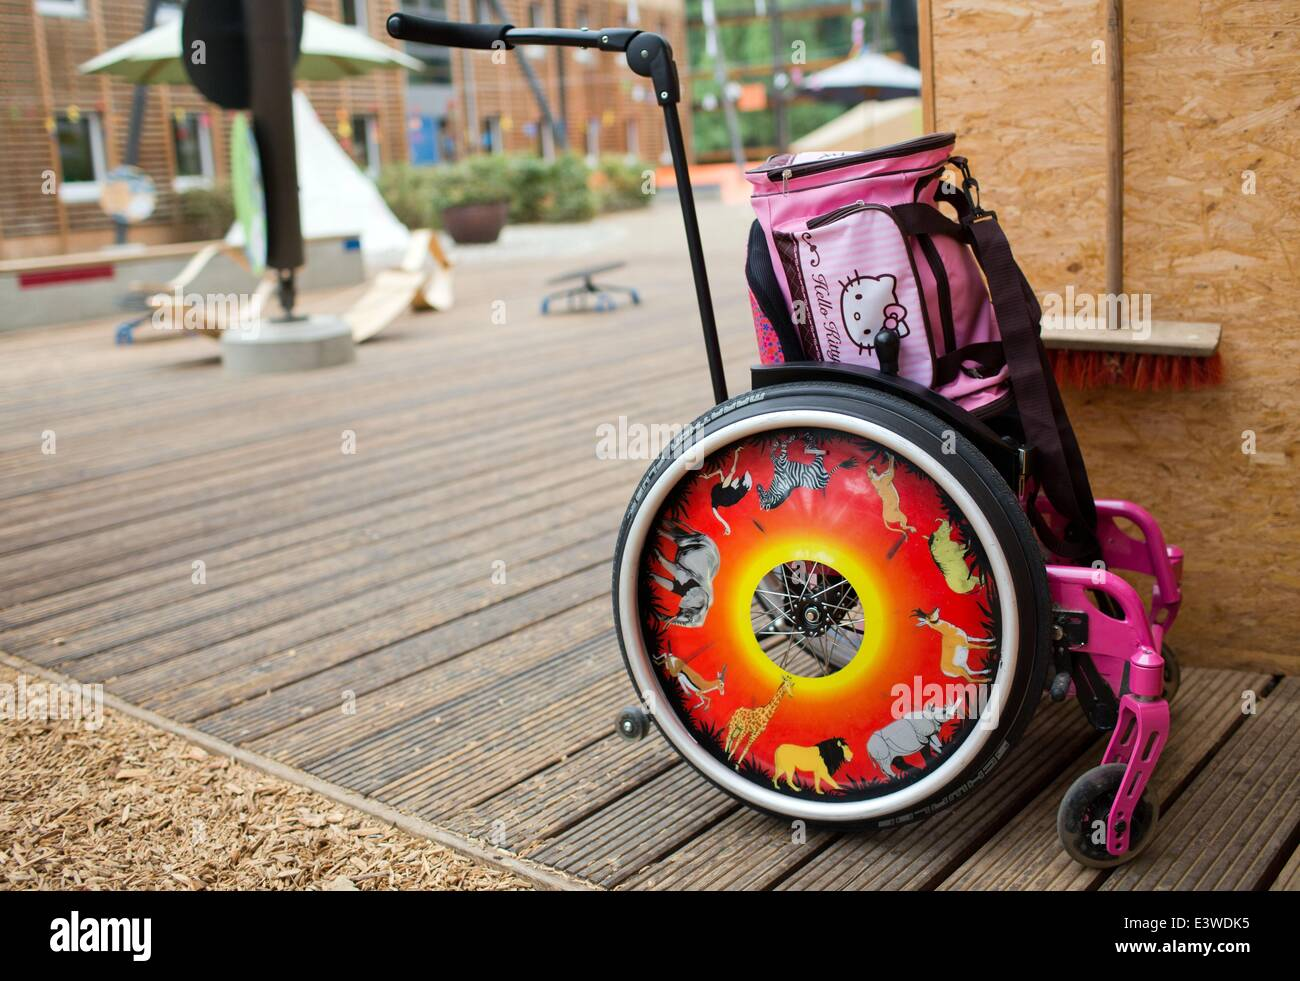 Wismar, Germany. 19th June, 2014. A childrens' wheelchair stands near the exit door to the garden of the integrated Stock Photo